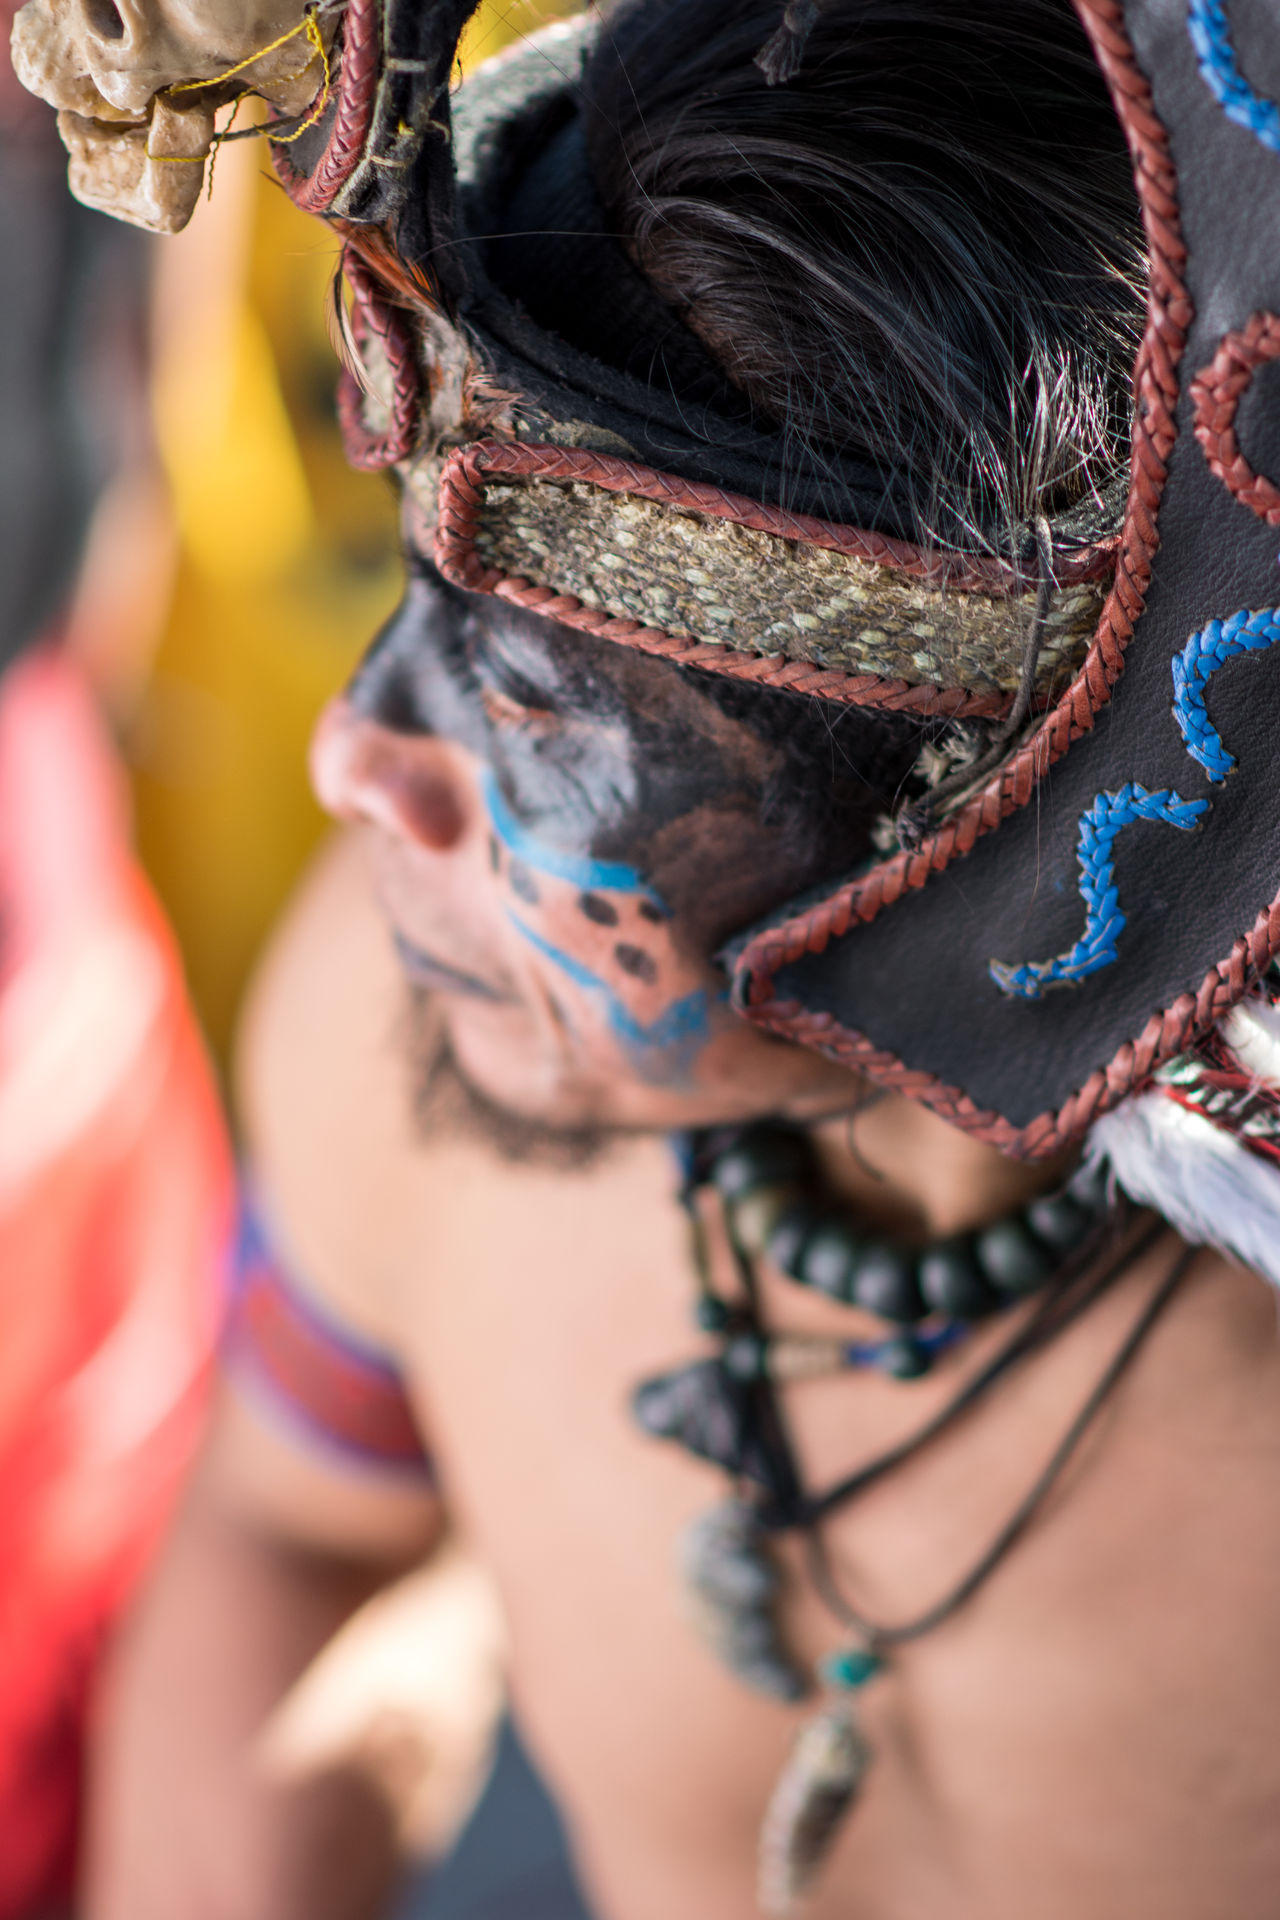 The chief of the clan! Adult Adults Only Arts Culture And Entertainment Beauty Ceremony Close-up Cultures Dancer Day Event Feather  Headdress Headwear One Woman Only Only Women Outdoors People Performance Period Costume Religion Tradition Traditional Clothing Women Young Adult Young Women First Eyeem Photo